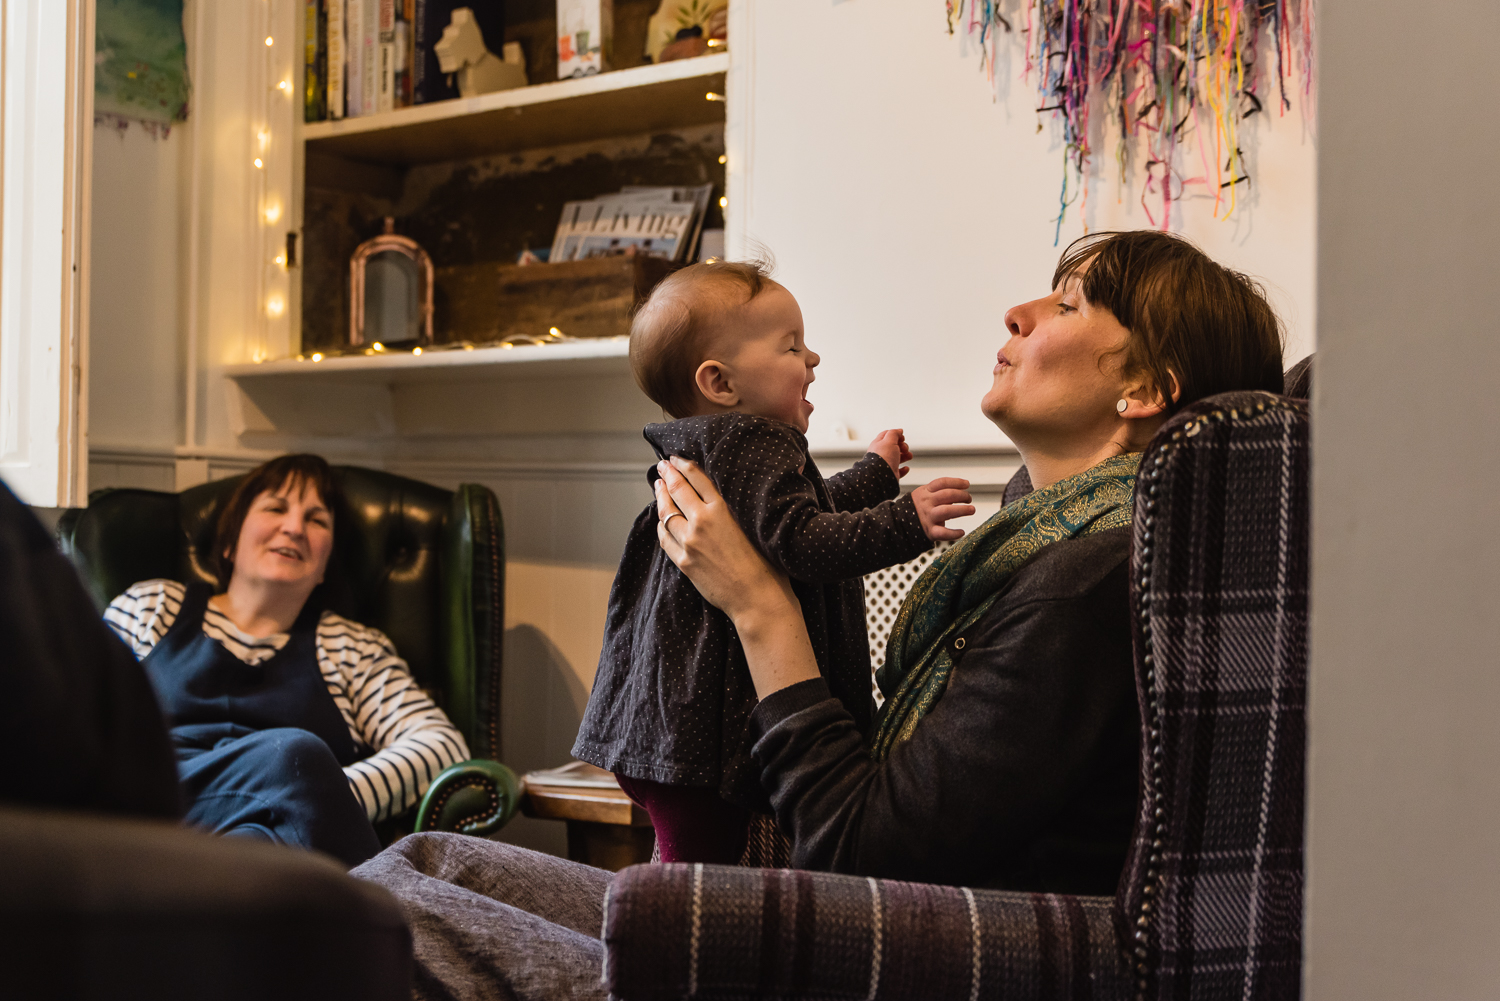 A lesbian couple and their baby taken by Diana Hagues Photograph